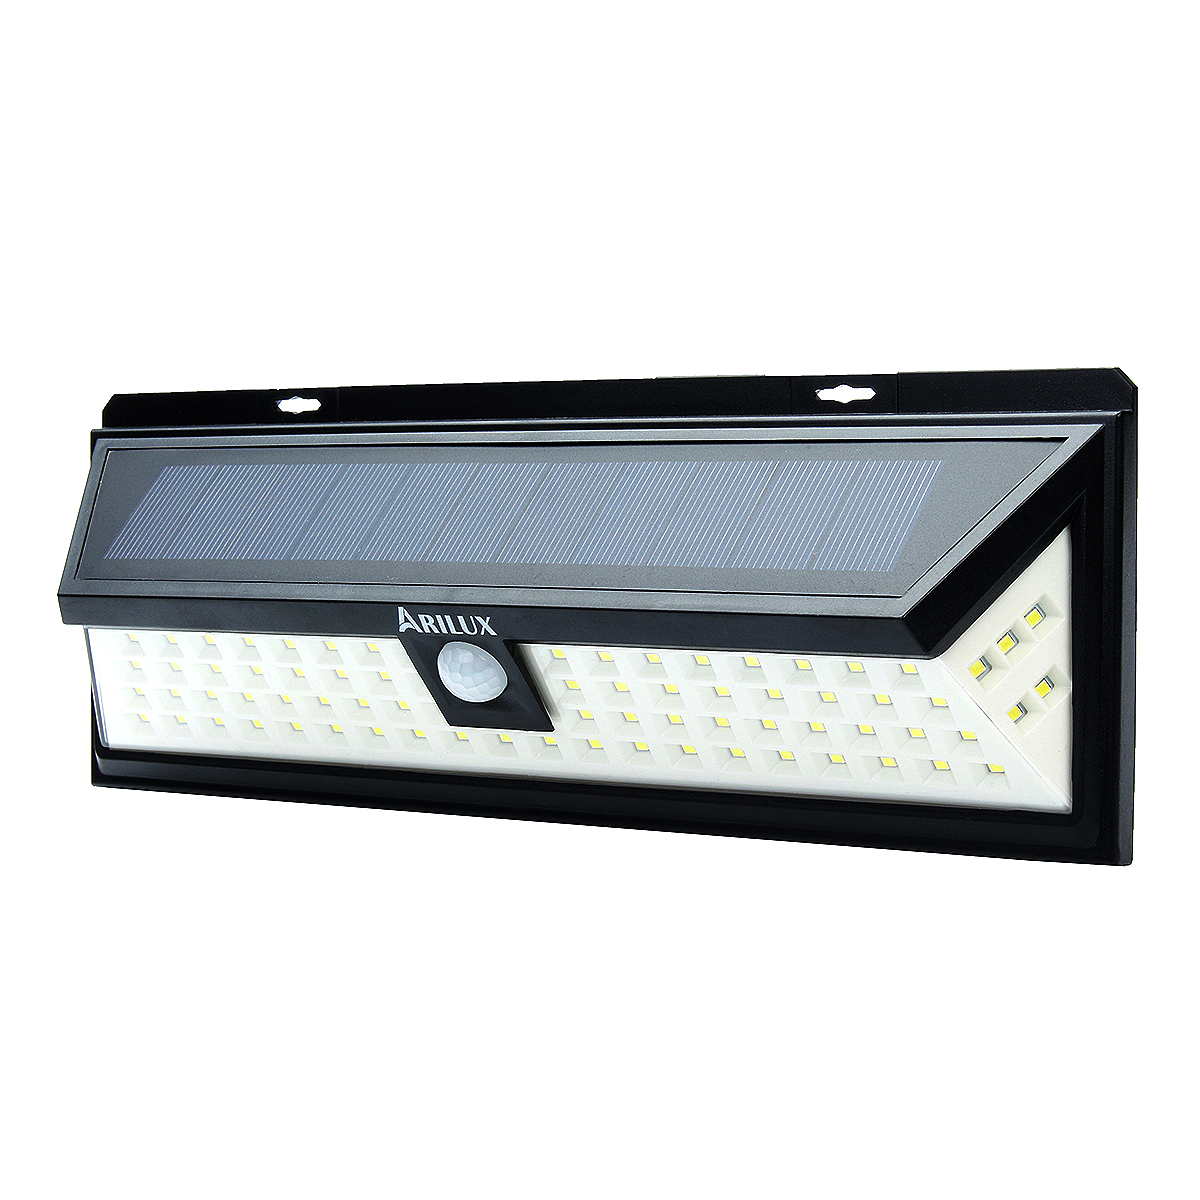 ARILUX Solar Wall Light 80 LED Home Security Solar Power Dimmable Waterproof Wall Light With Motion Sensor For Garden Patio